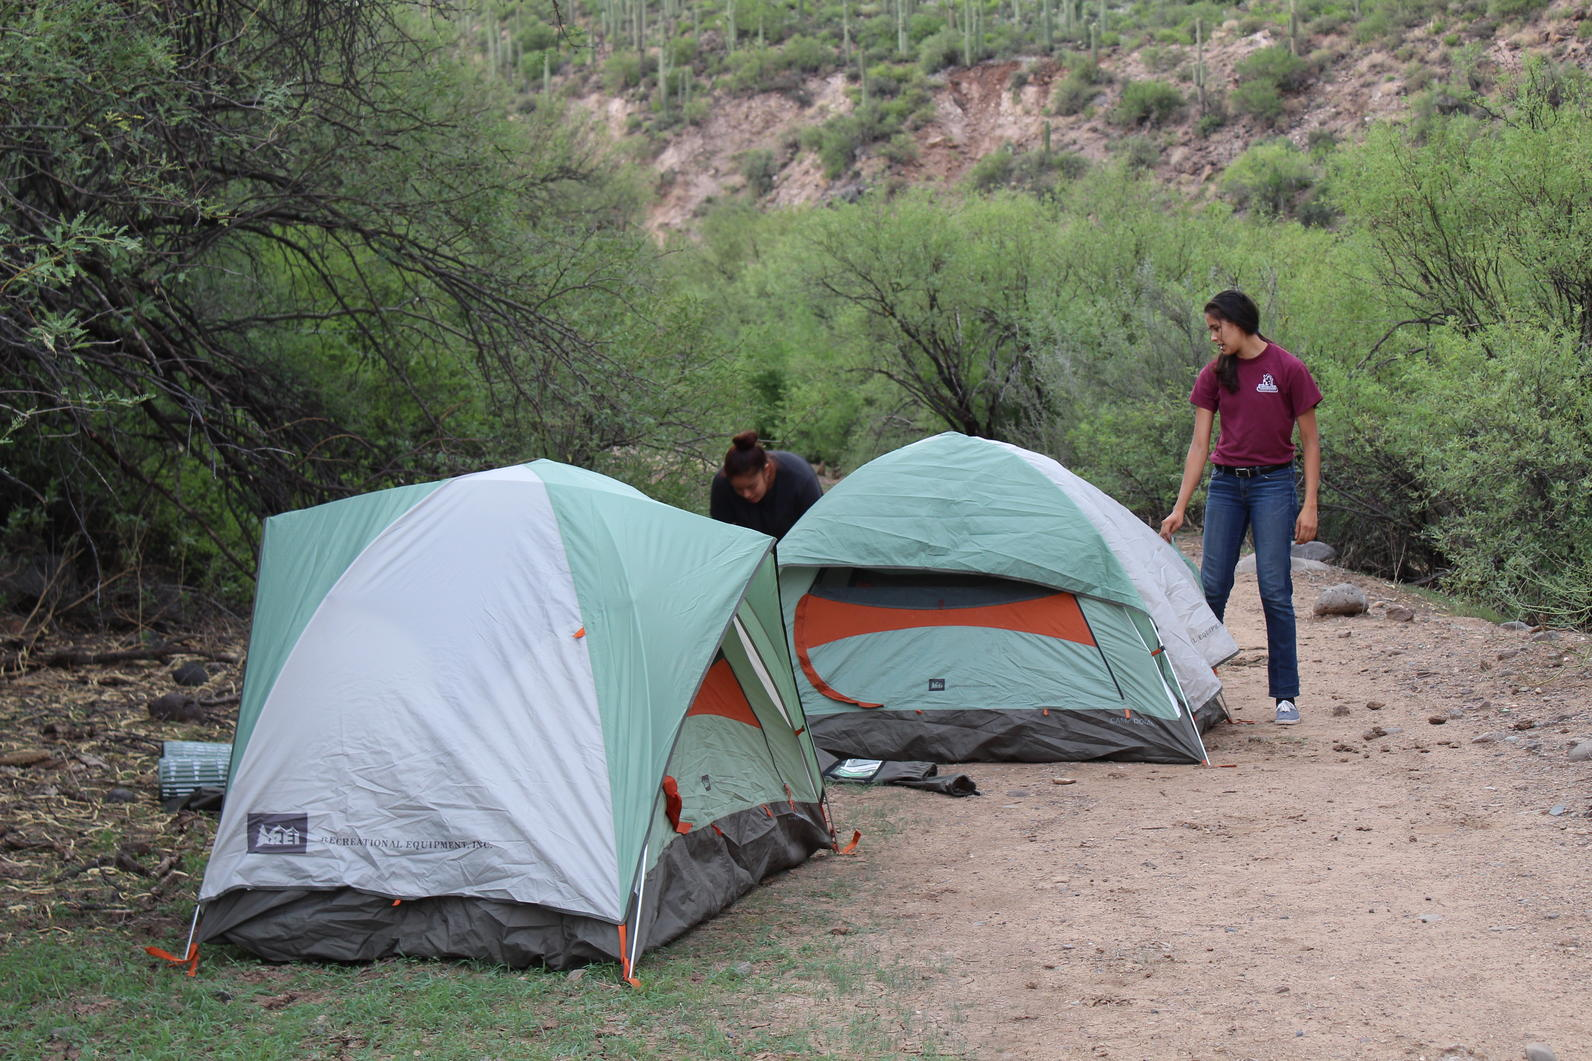 River Pathways interns Nyah Torres and Aritzel Baez prepare for a night on the Agua Fria River the night before a Yellow-billed Cuckoo survey.